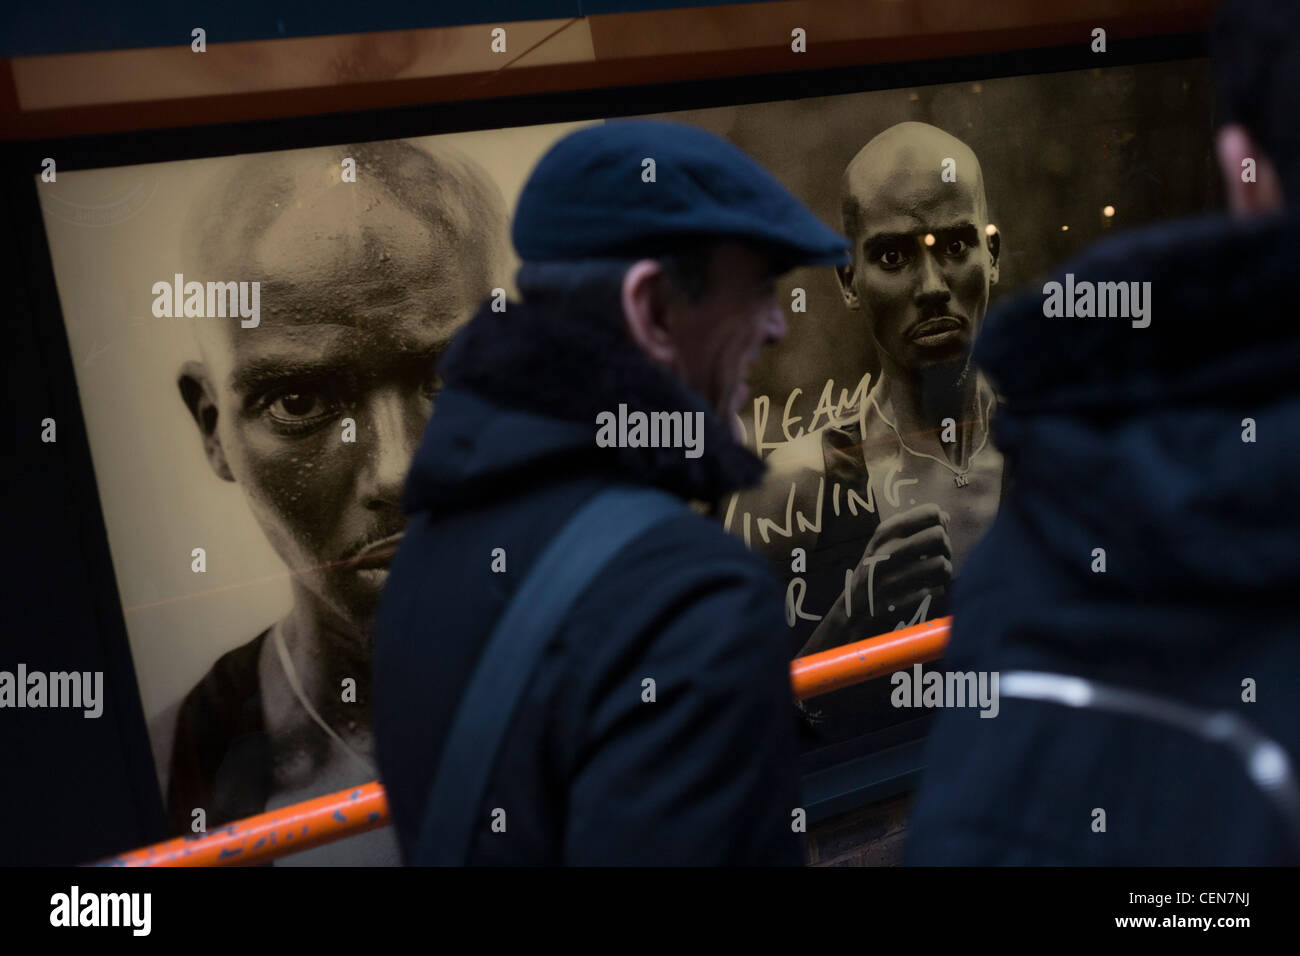 Passers-by walk past British athlete Mo Farah's face adorning posters outside a Nike shop window in London's - Stock Image